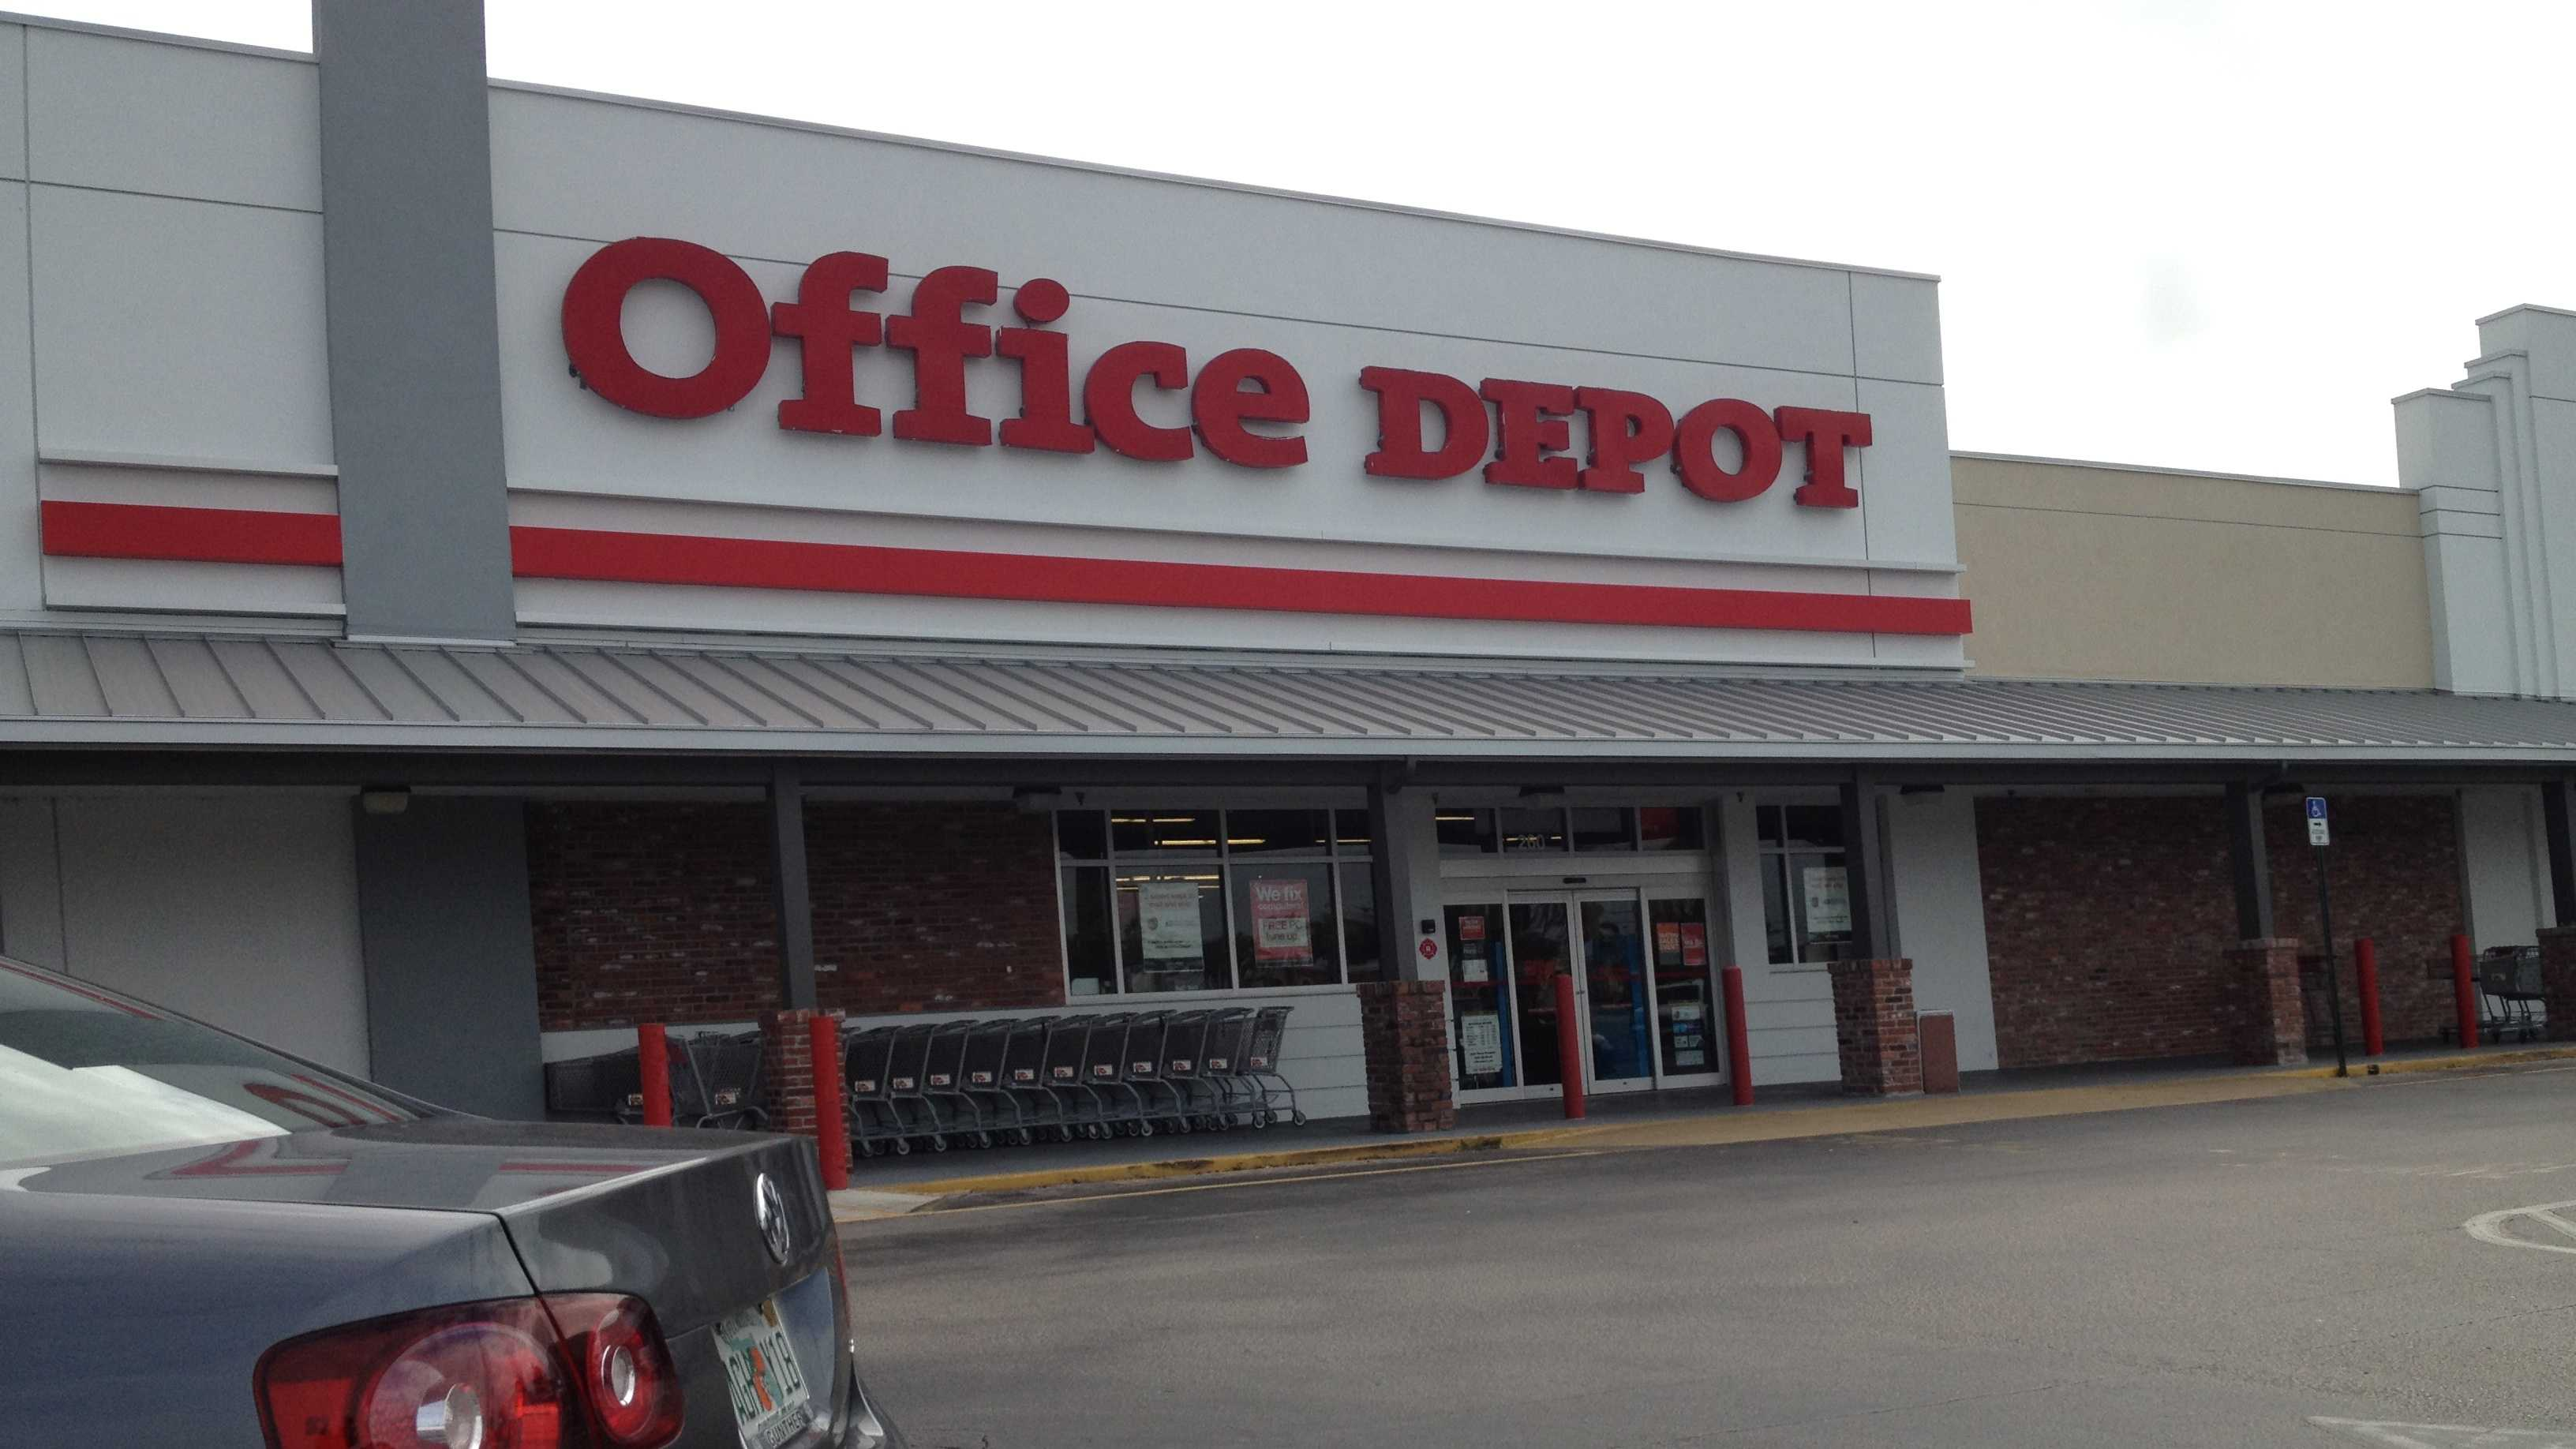 Police say three Office Depot employees were robbed in the parking lot while leaving the store on Nov. 11. (Photo: Angela Rozier/WPBF)